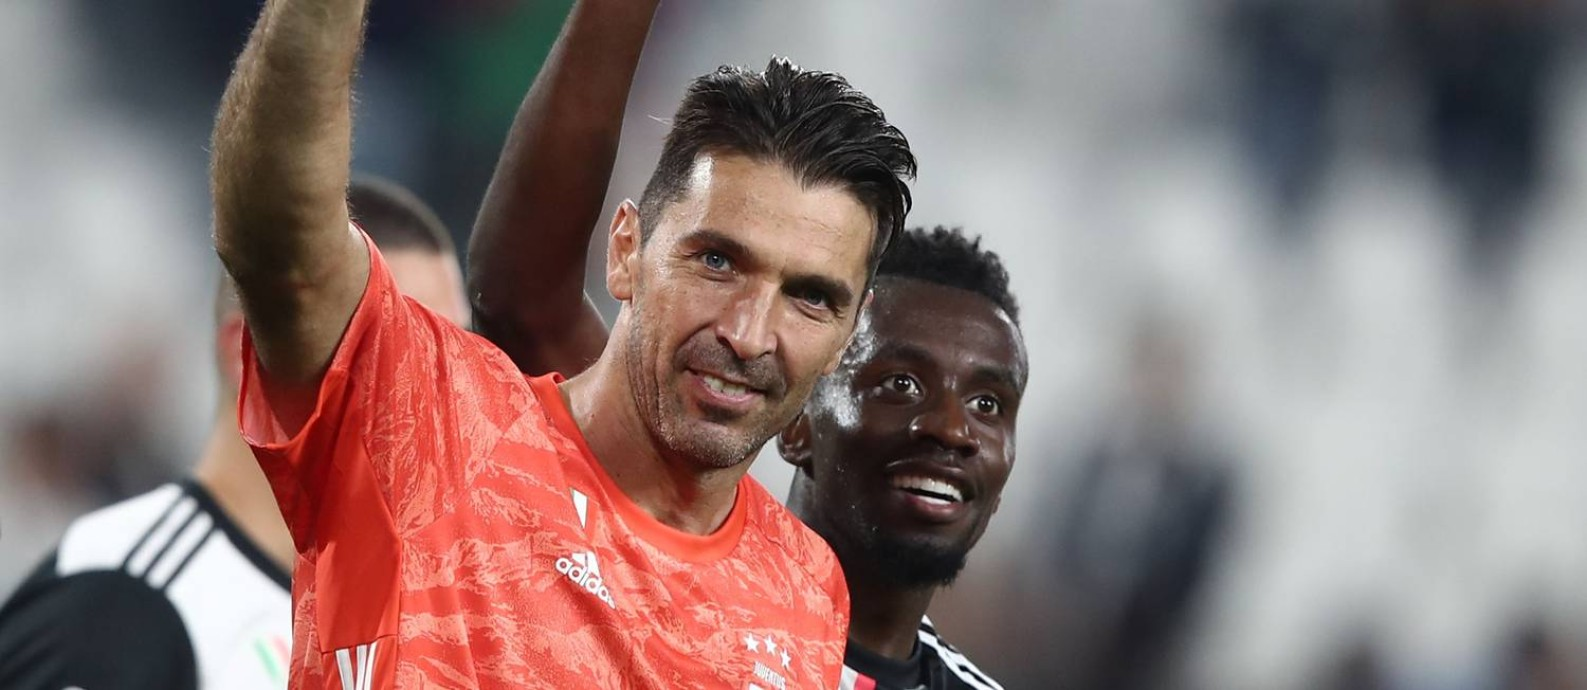 Juventus' Italian goalkeeper Gianluigi Buffon (L) and Juventus' French midfielder Blaise Matuidi celebrate at the end of the Italian Serie A football match Juventus vs Verona on September 21, 2019 at the Juventus stadium in Turin. (Photo by Isabella BONOTTO / AFP) Foto: ISABELLA BONOTTO / AFP